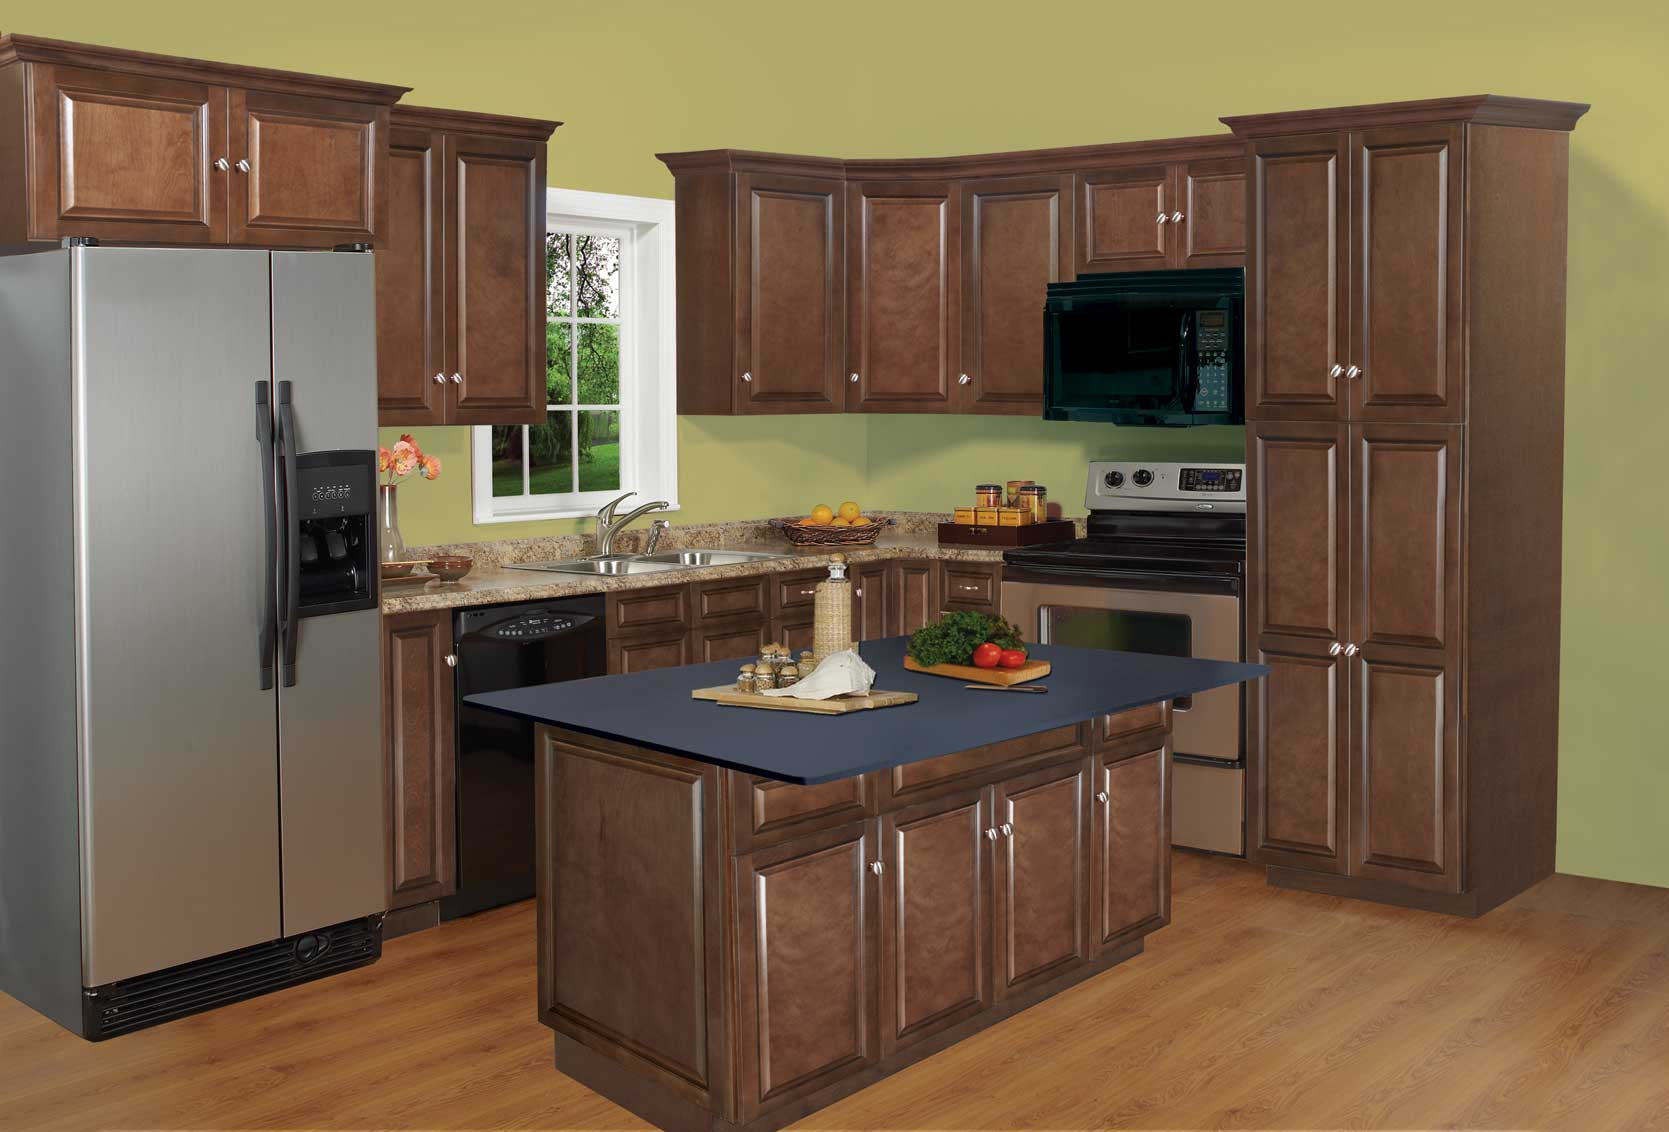 richmond auburn maple kitchen cabinets assembly required heeby 39 s surplus inc. Black Bedroom Furniture Sets. Home Design Ideas